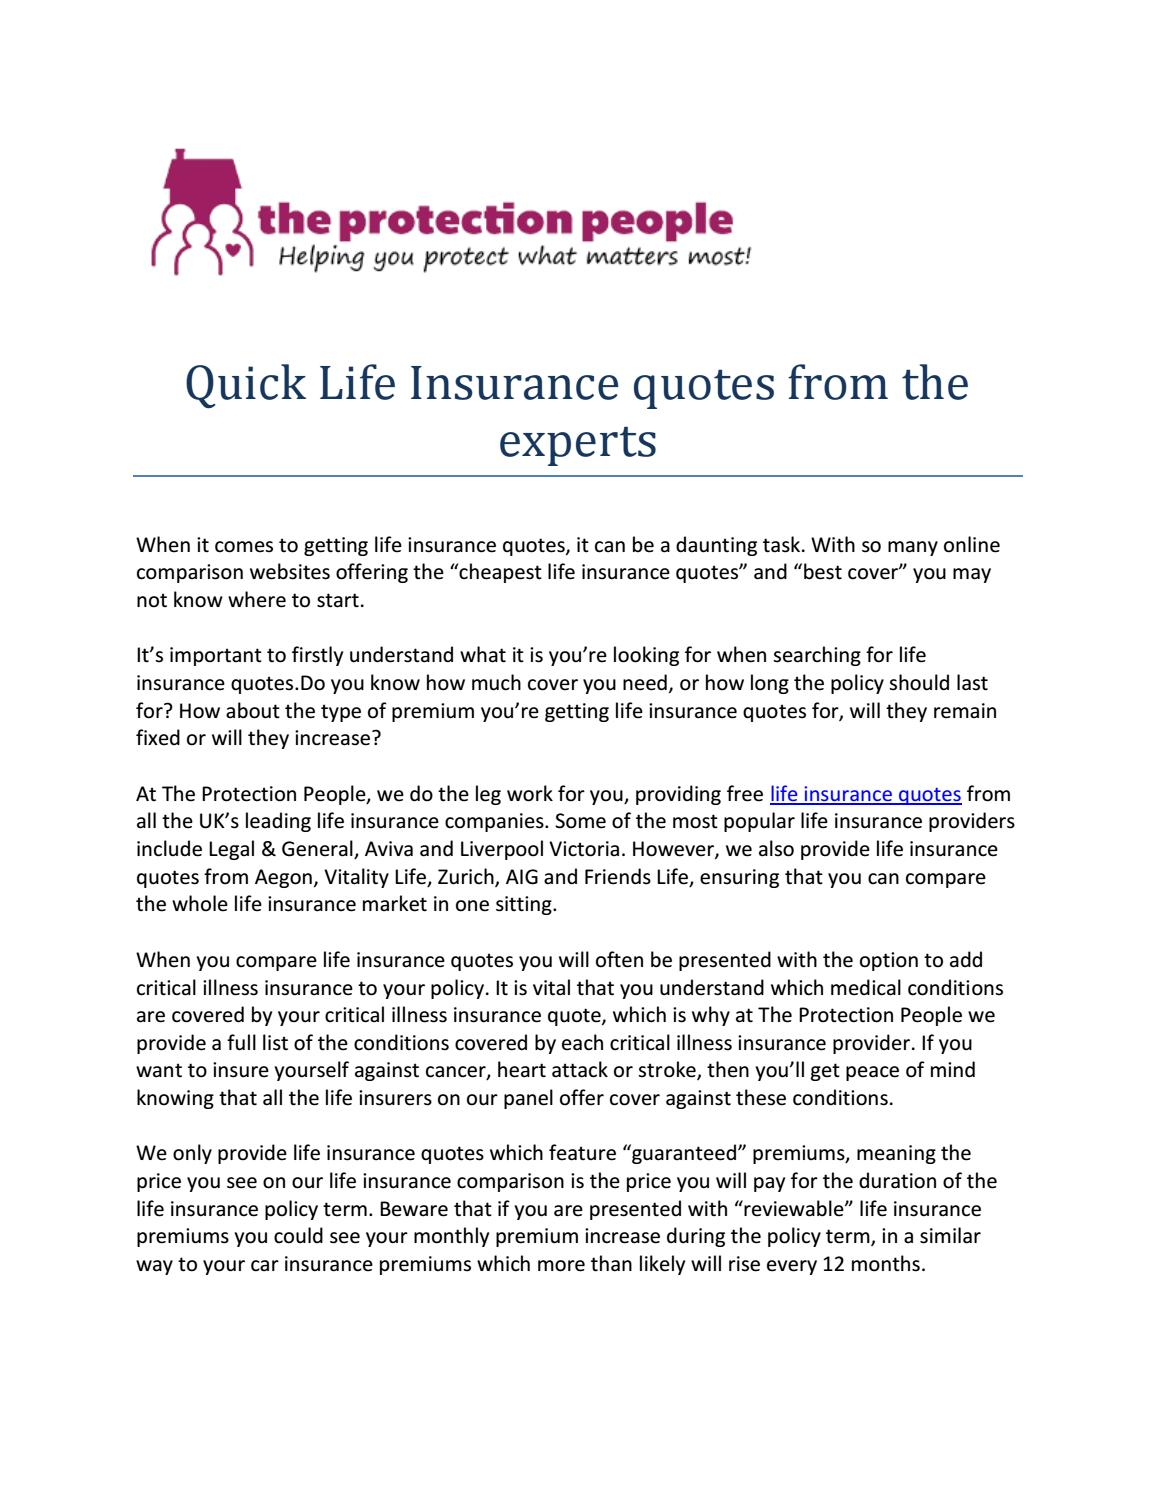 Whole Life Insurance Quote Online The Protection People  Quick Life Insurance Quotes From The